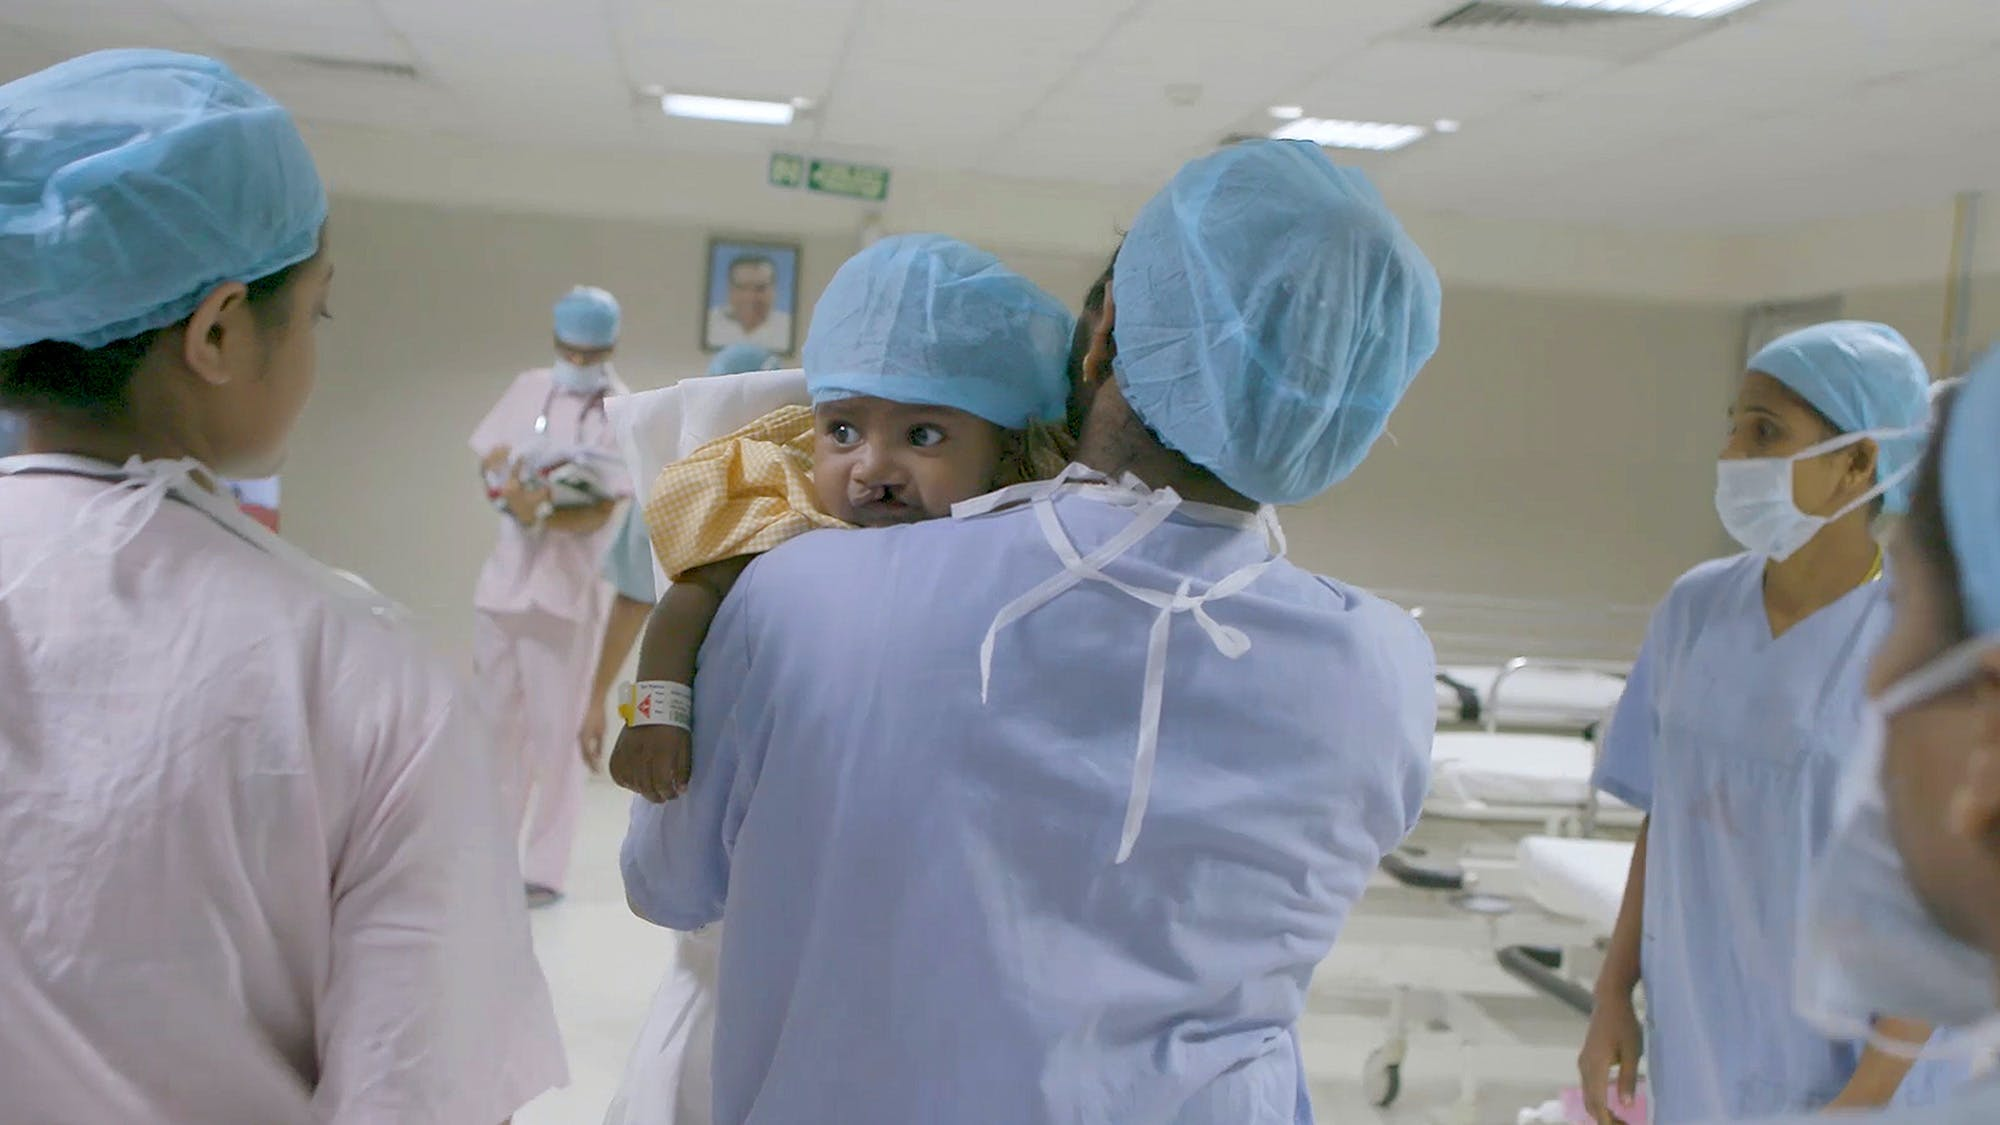 Doctor takes child into surgery.